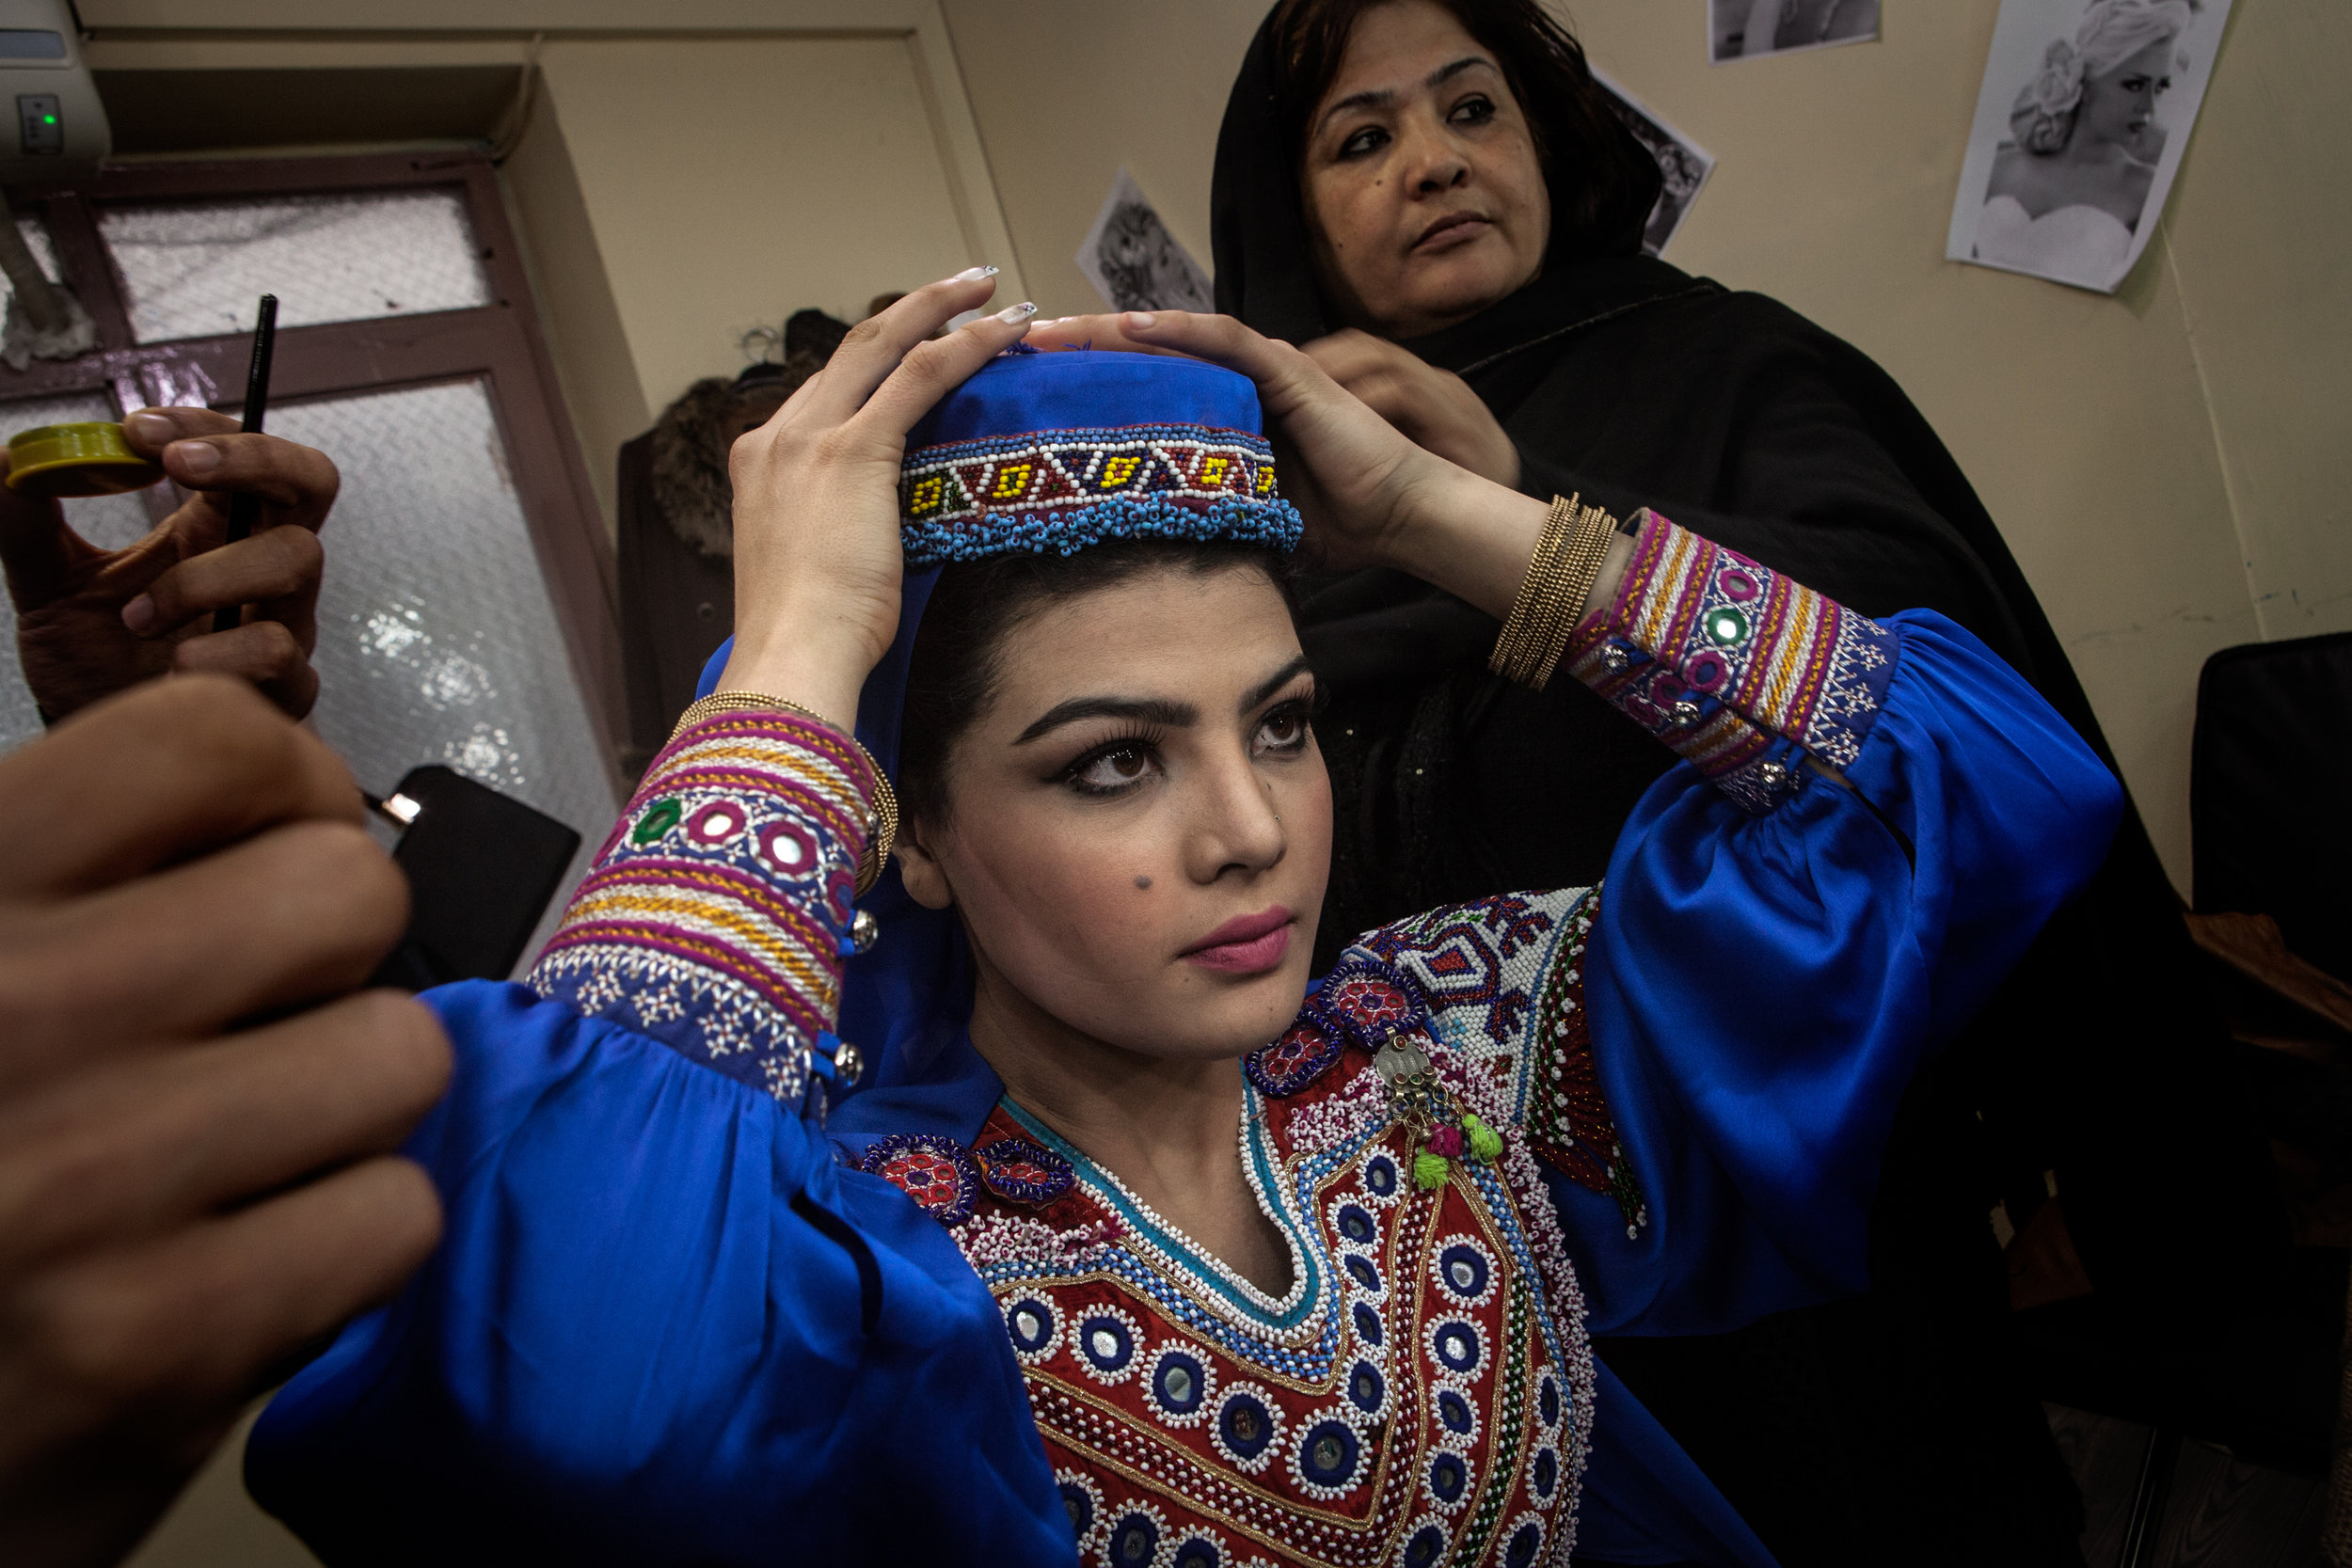 "ERIN TRIEB |  www.erintrieb.com  |  @erintrieb   Zulala Hashemi, 16, is helped by her mother Mermen Hashemi as she prepares for the second round of judging on Afghan Star — a TV show similar to the U.S. show ""American Idol"" — in Kabul, Afghanistan, March 2, 2017.  [ The New York Times ]"